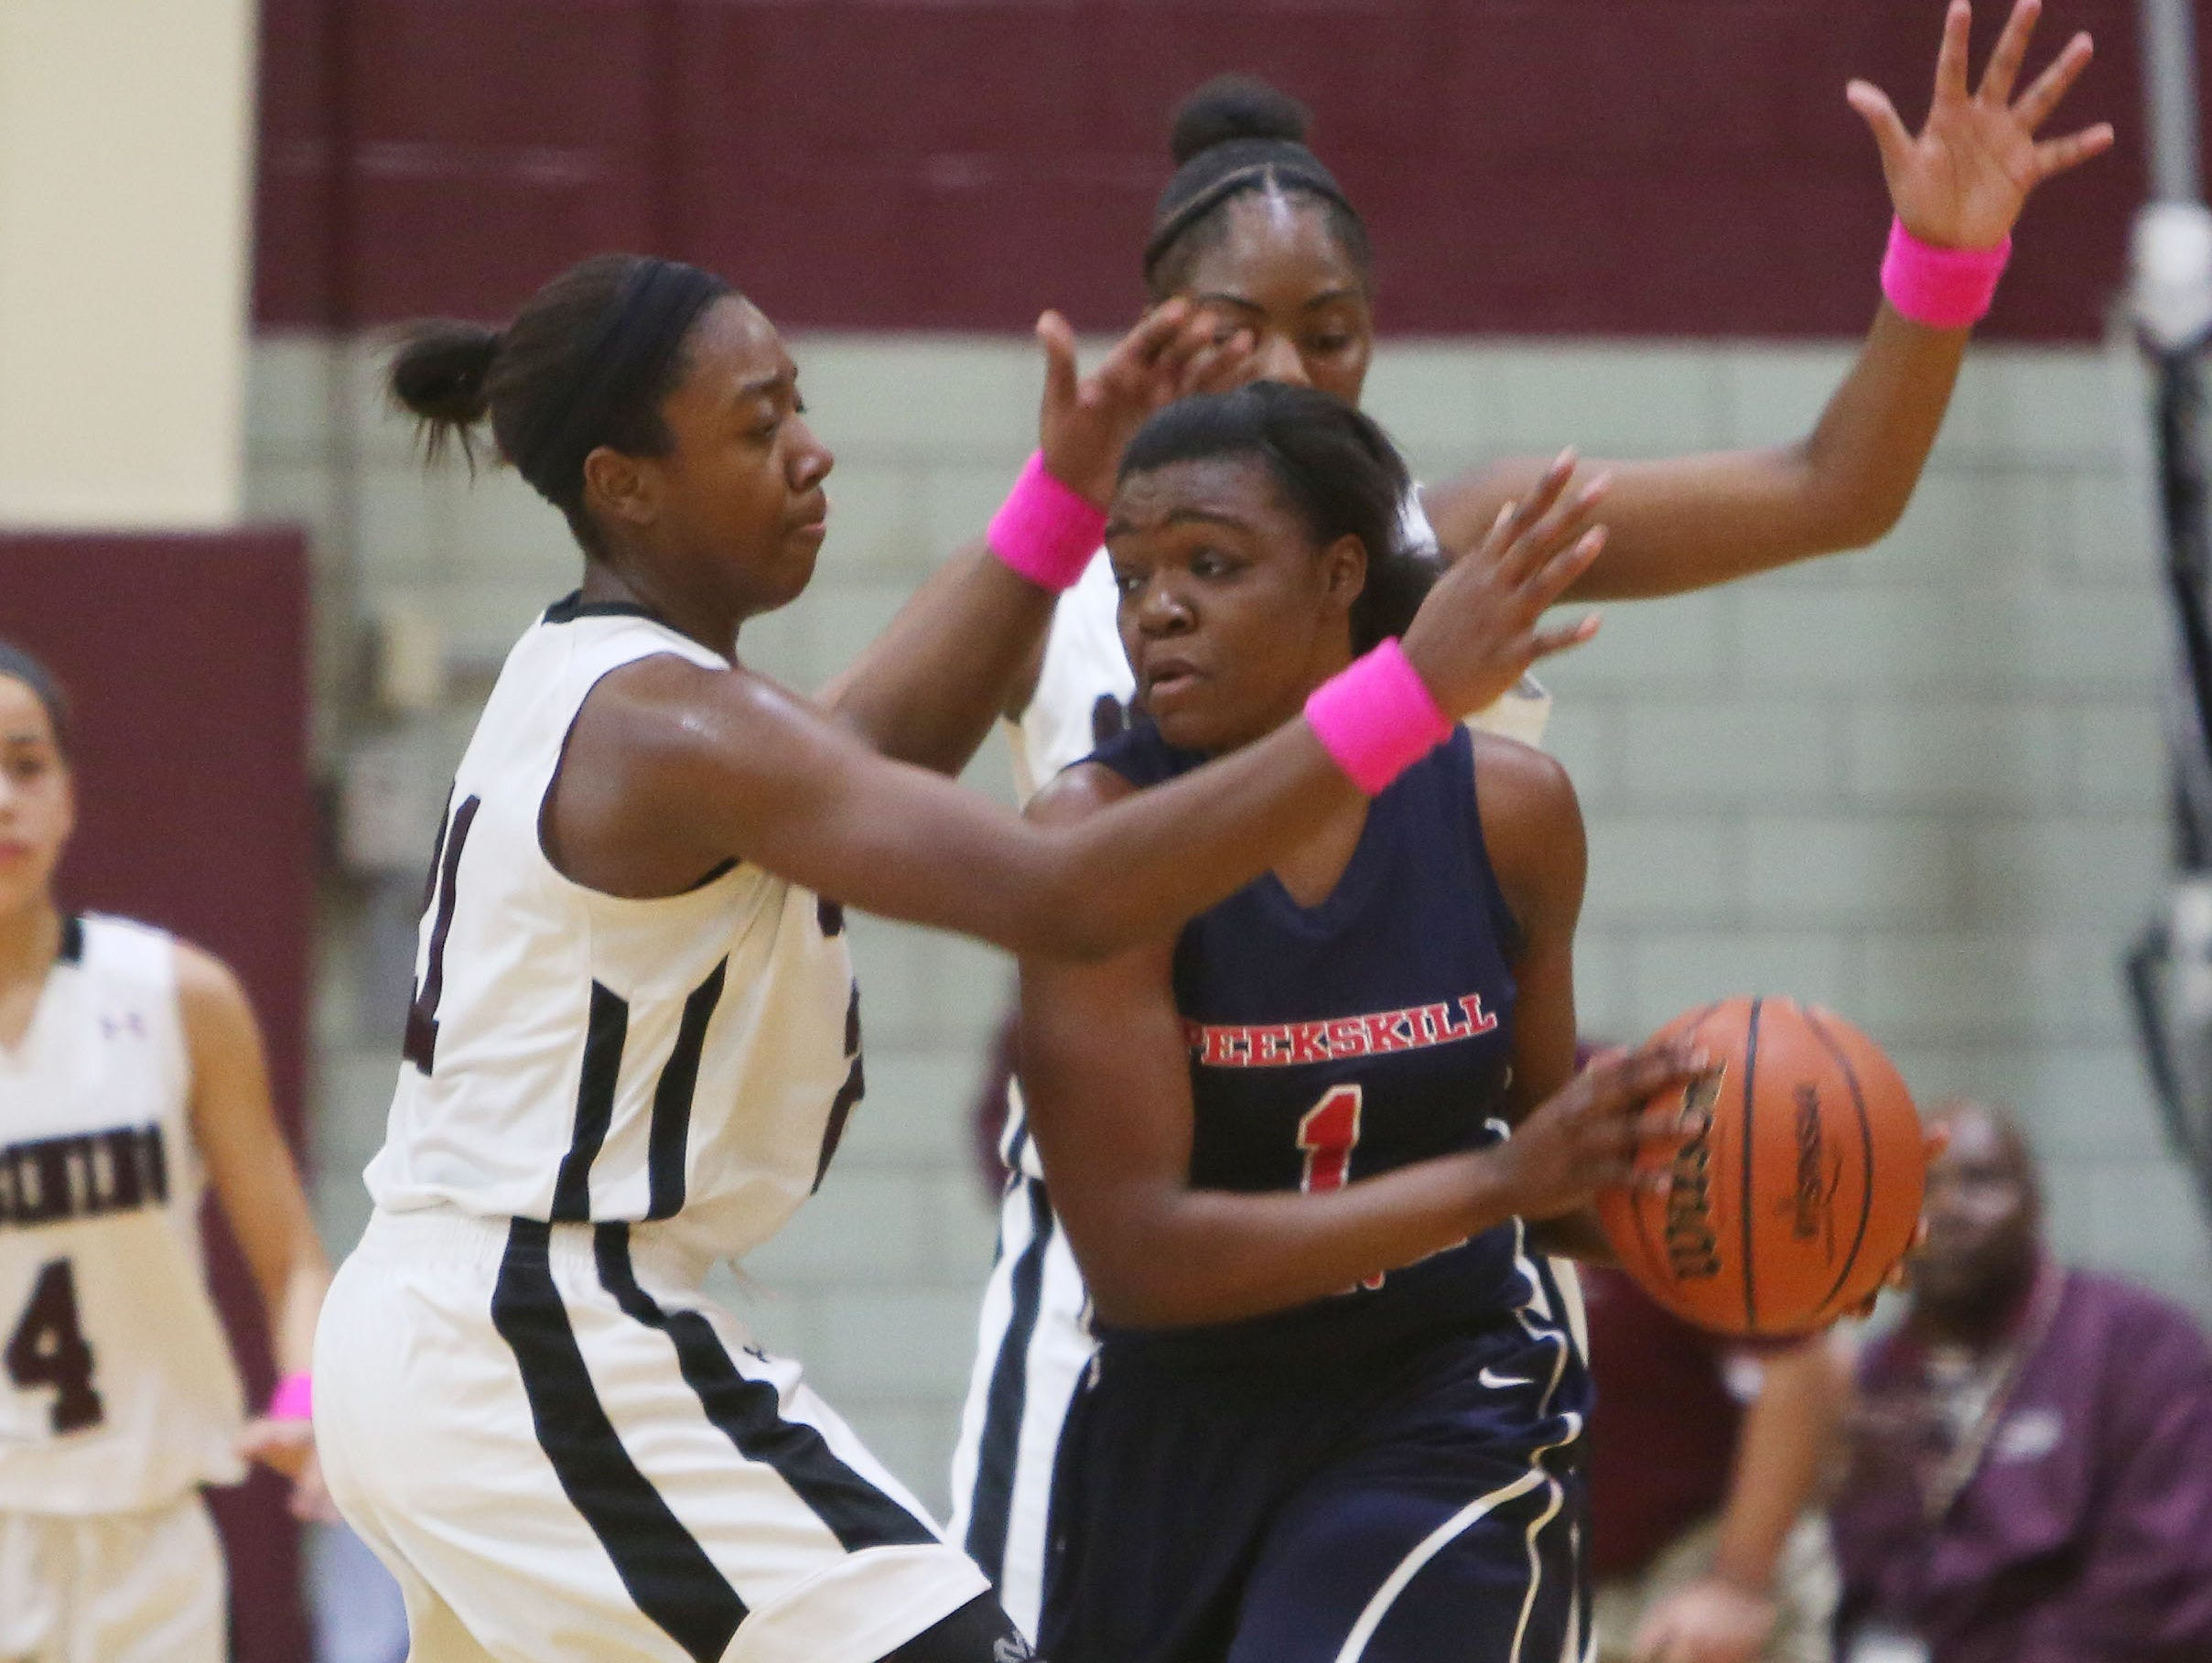 Peekskill's Lanay Rodney looks for a teammate while getting pressure from Ossining's Shadeen Samuels during their game Tuesday at Ossining High School.